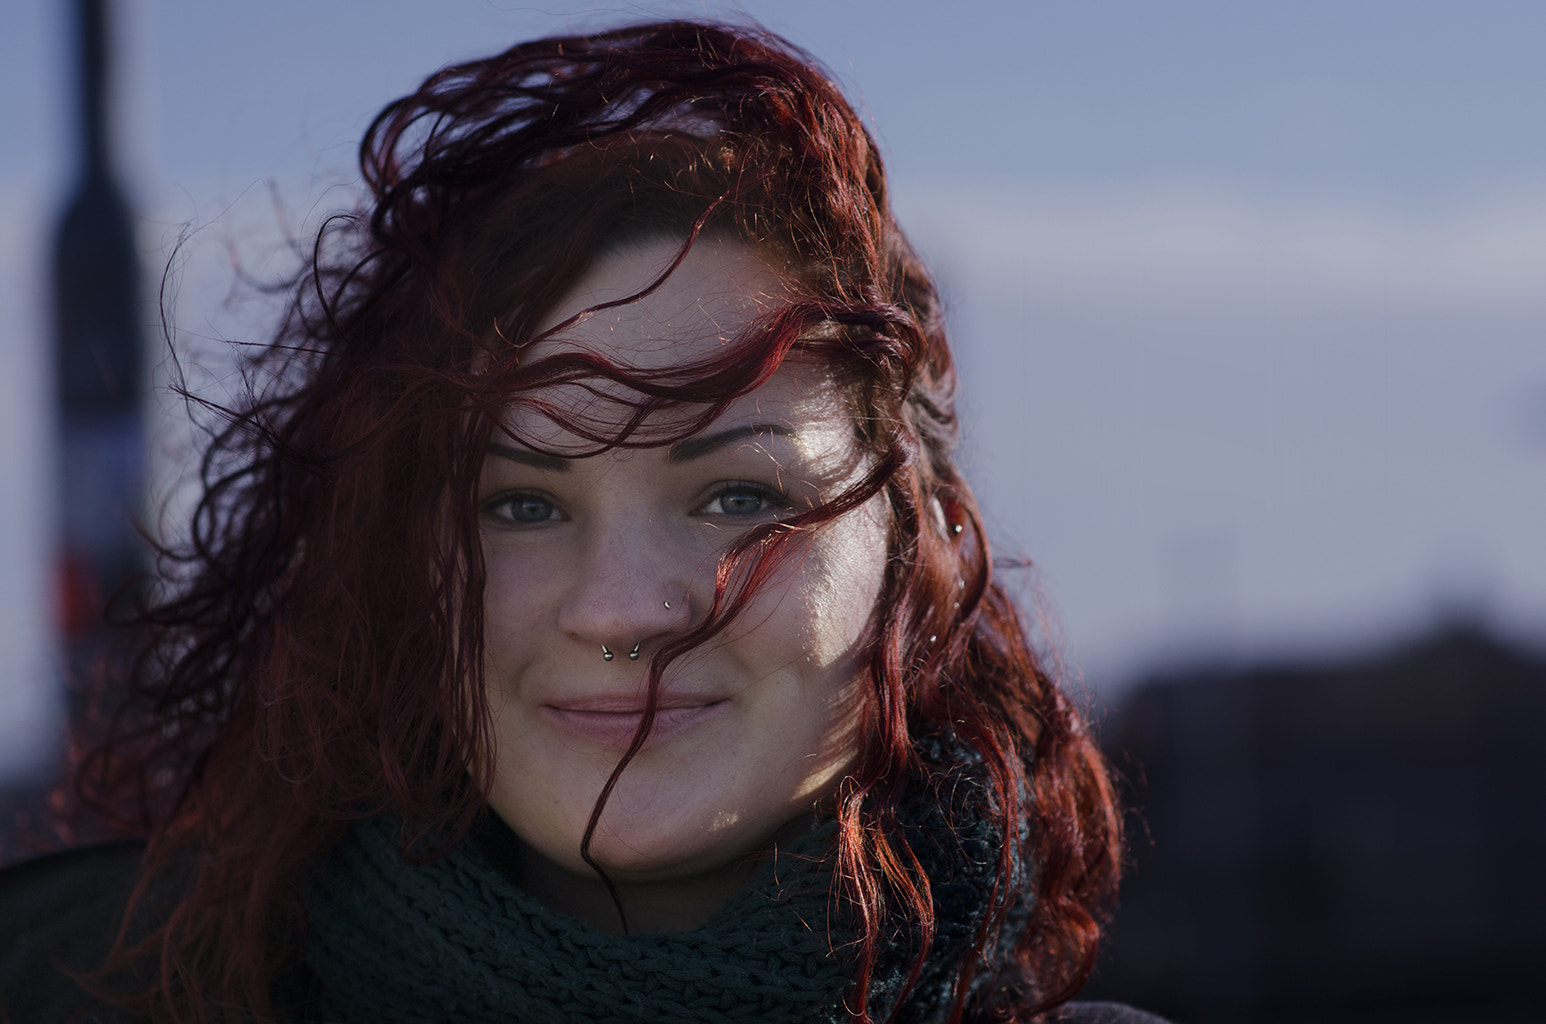 Photograph Red Haired Girl with Piercing by Mustafa Keskin on 500px